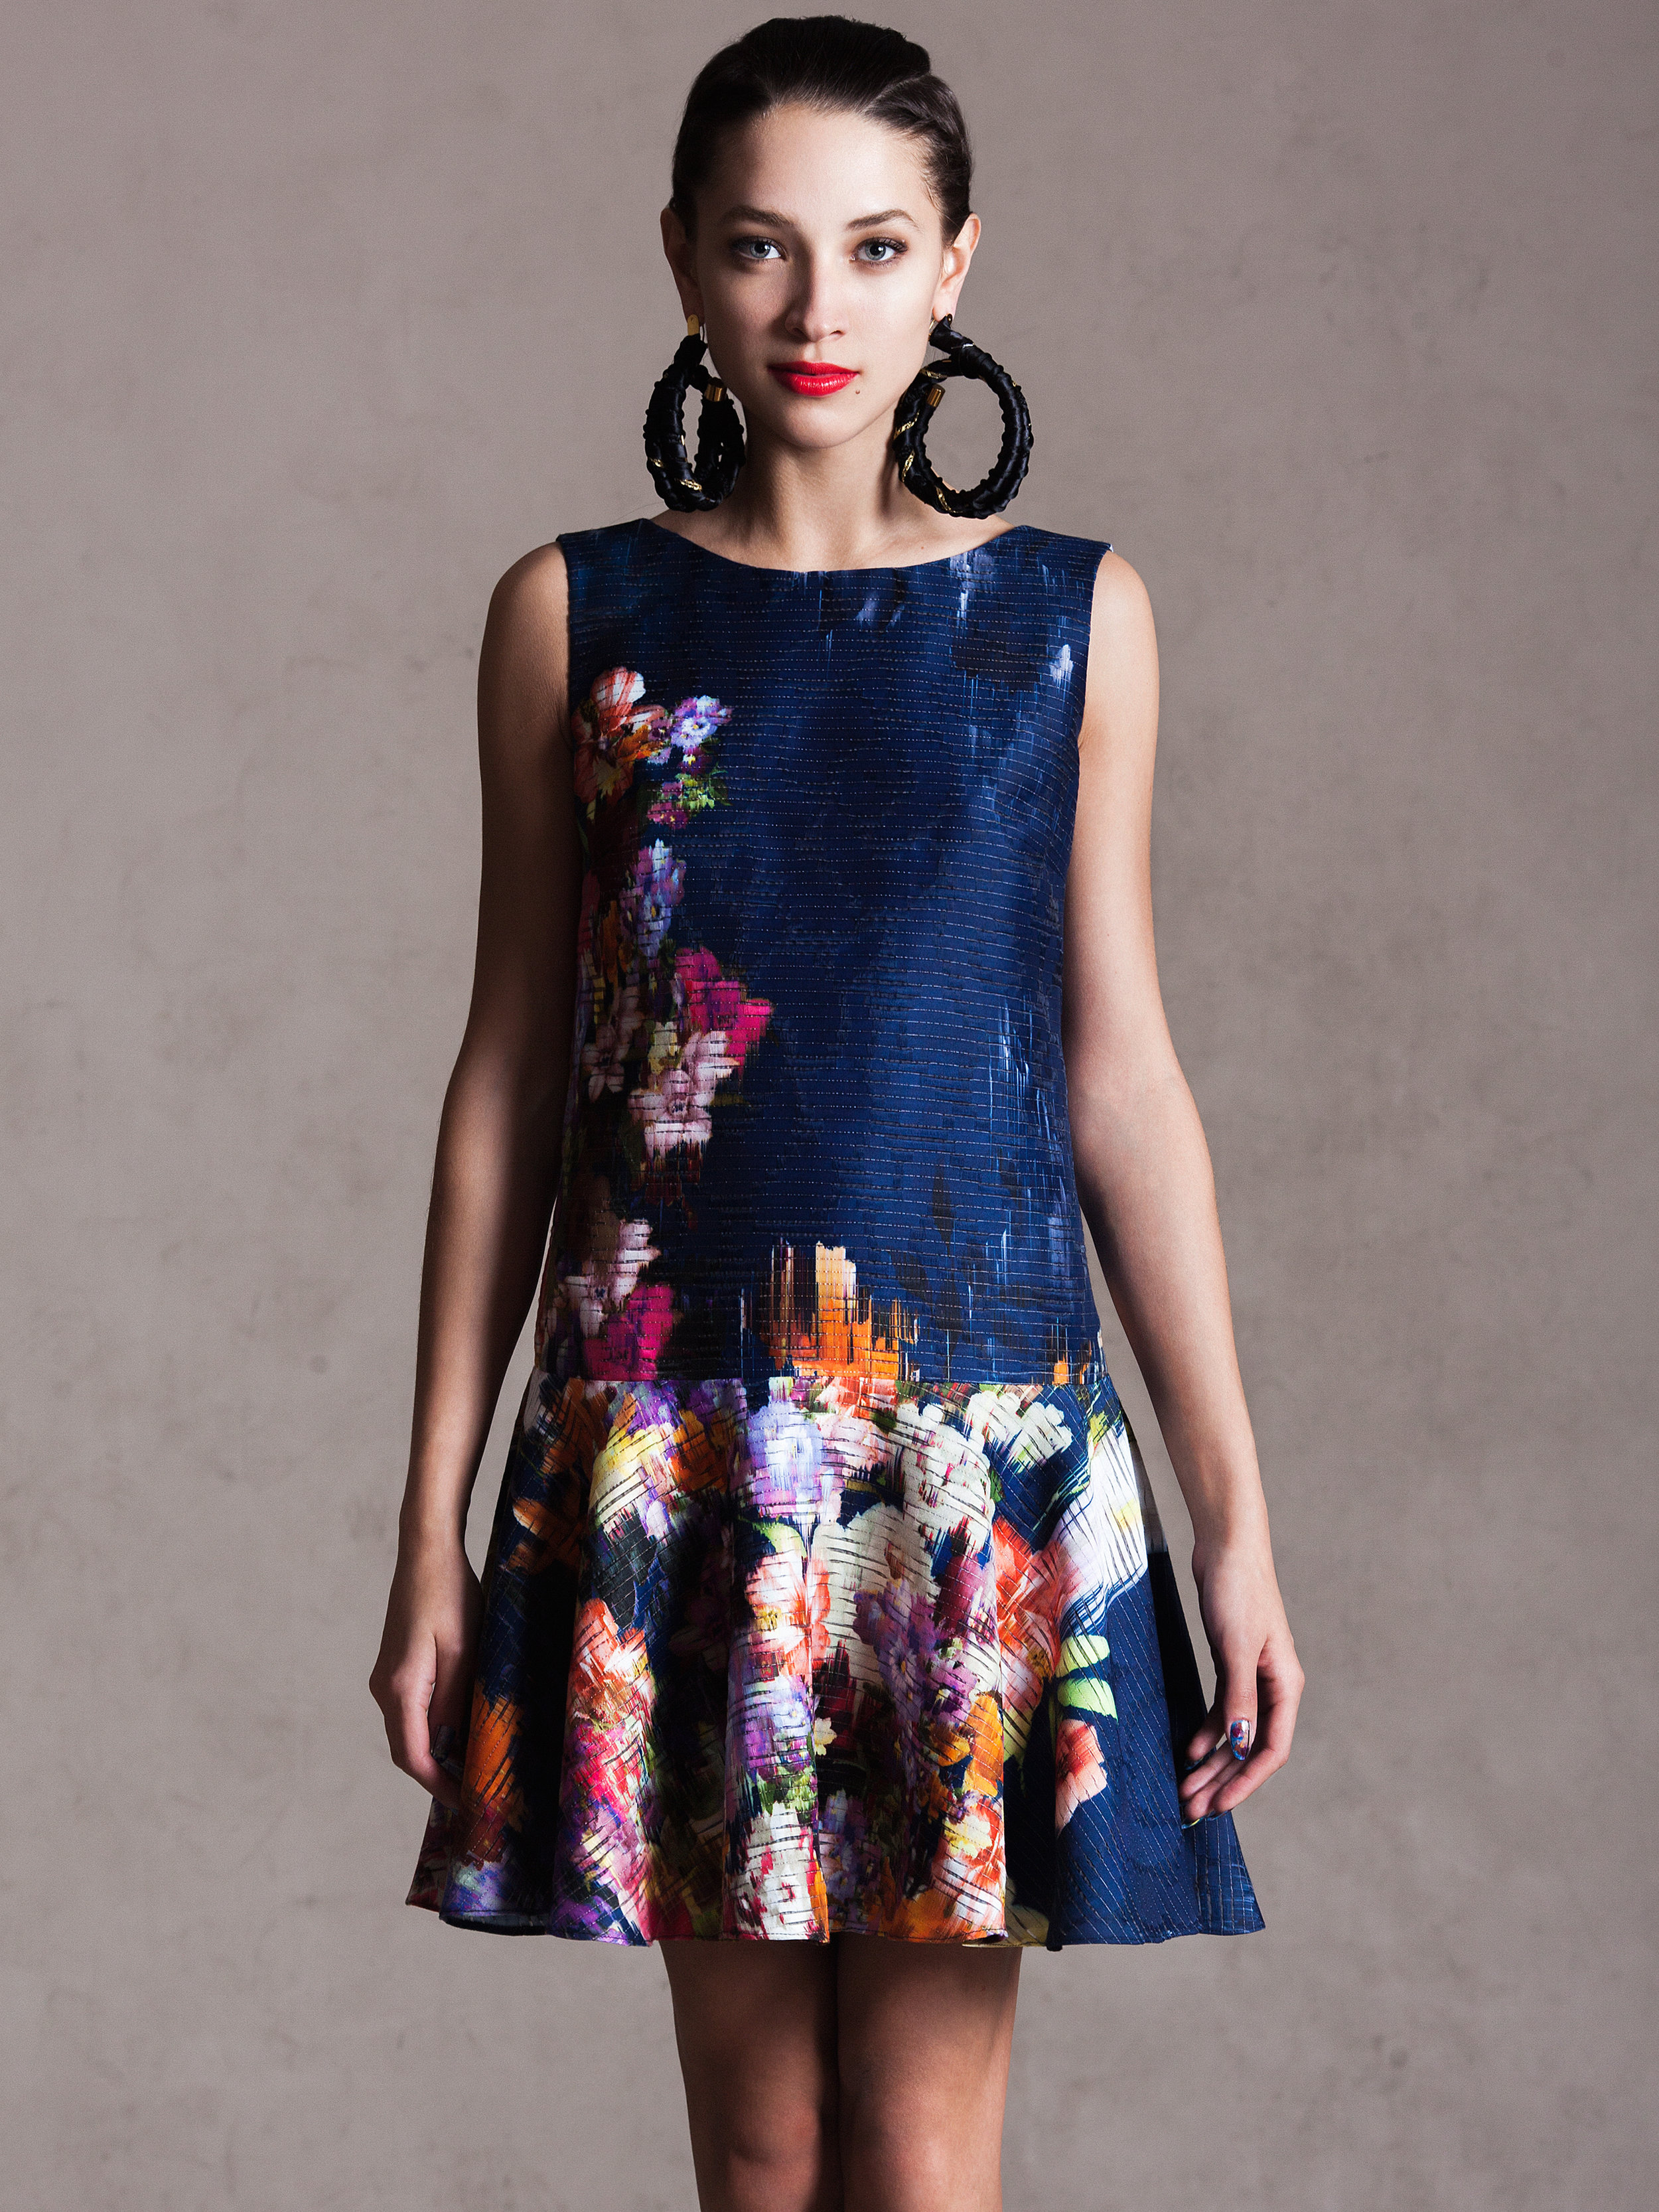 Lucian-Matis-Lookbook-20150204-004c.jpg